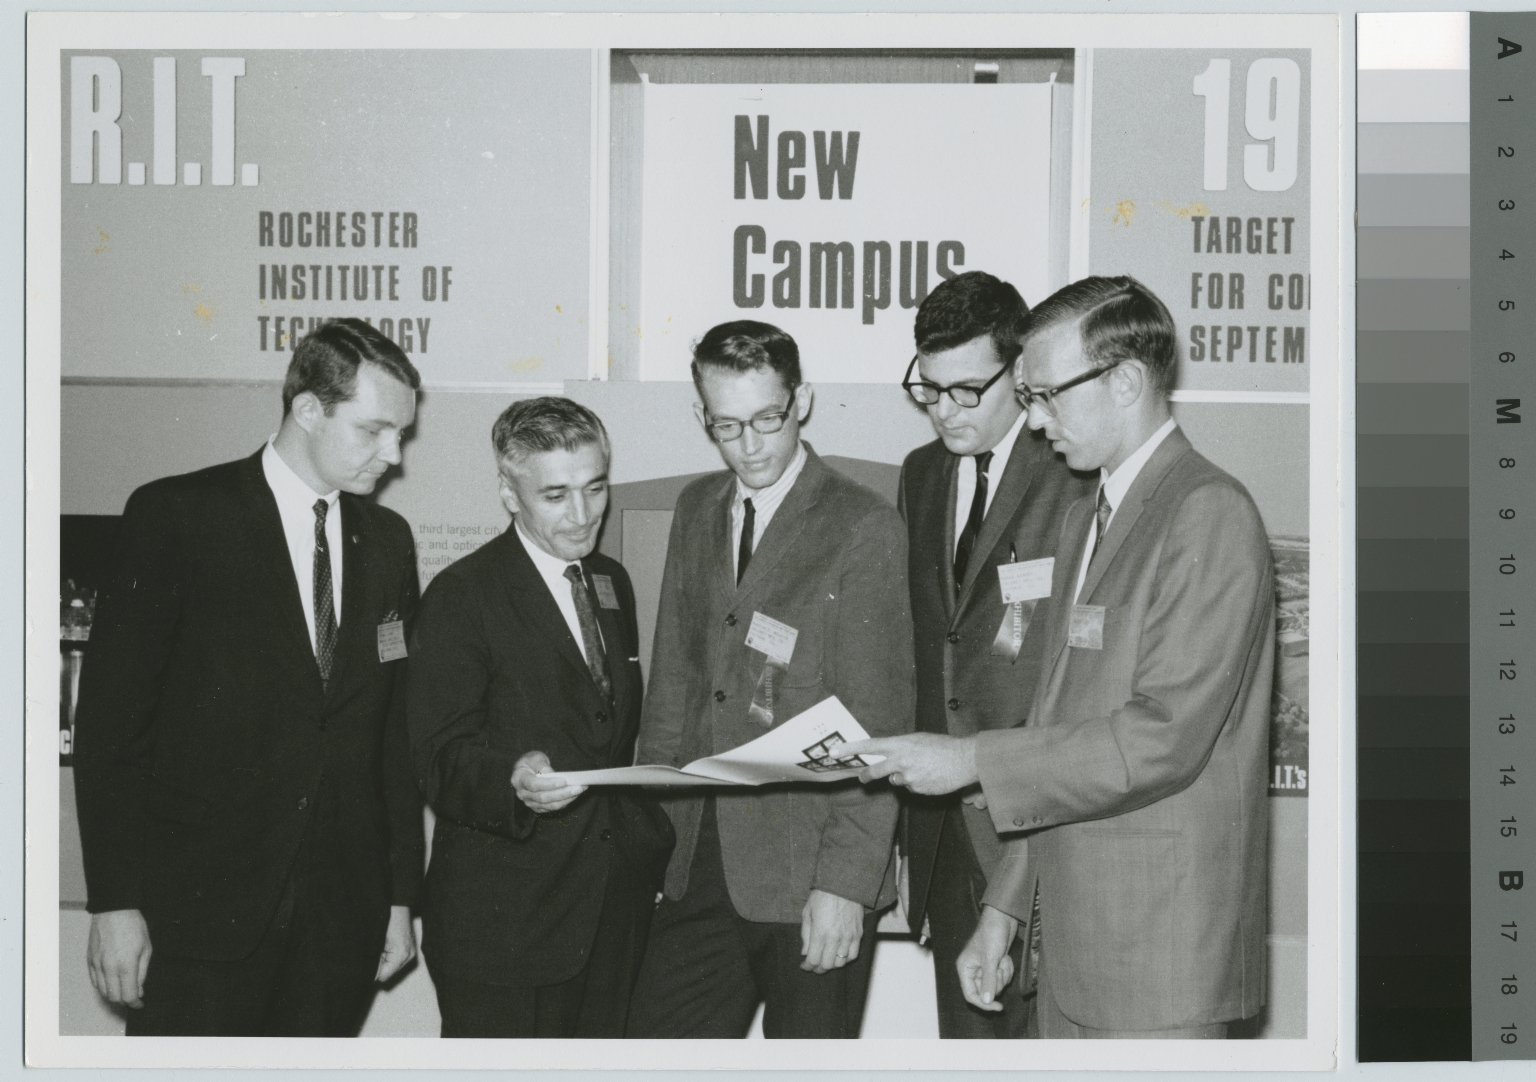 Alumni new campus fund drive, Rochester Institute of Technology